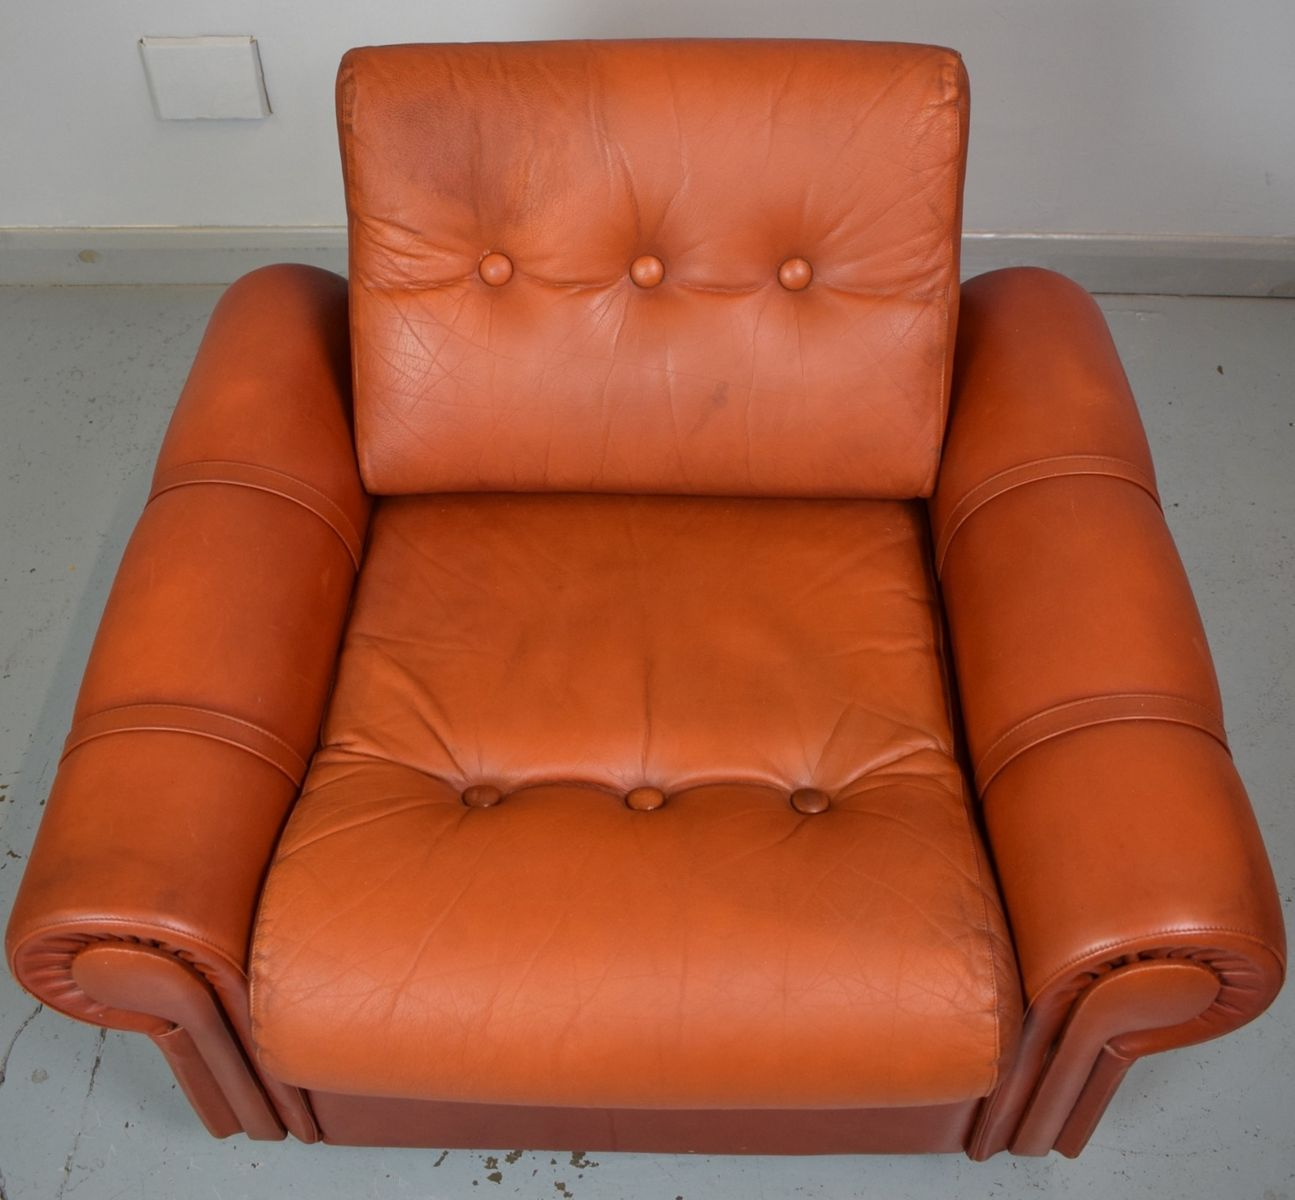 red lounge chair desk keyboard tray vintage leather for sale at pamono